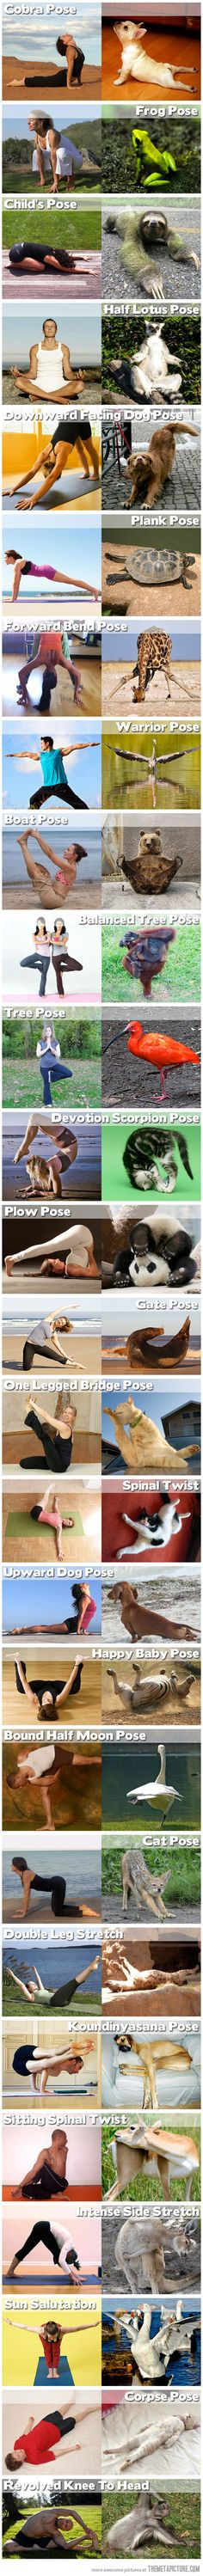 The Animal Guide to Yoga